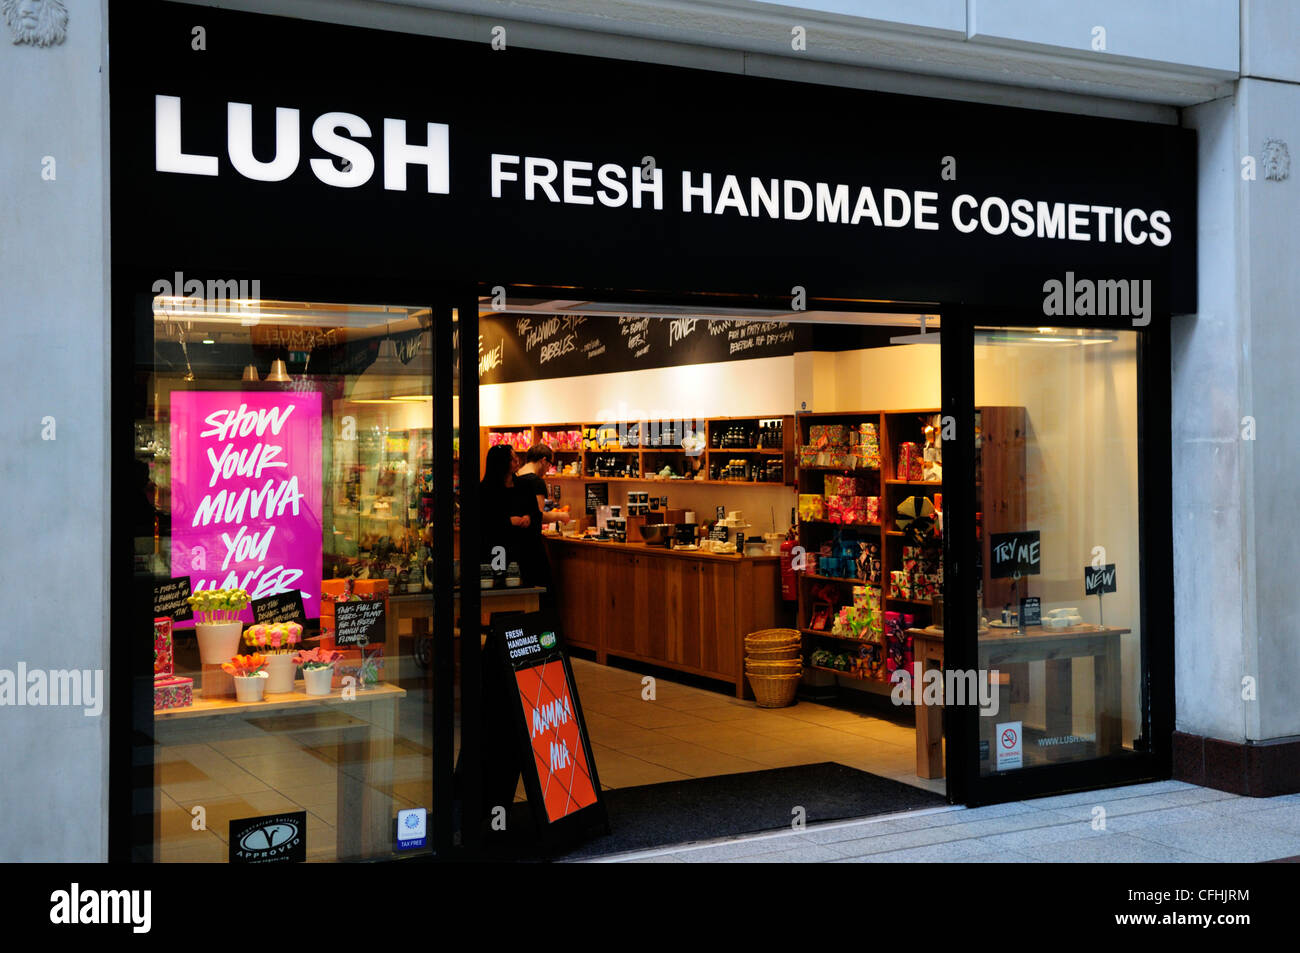 Lush Fresh Handmade Cosmetics Shop, Cambridge, England, UK - Stock Image